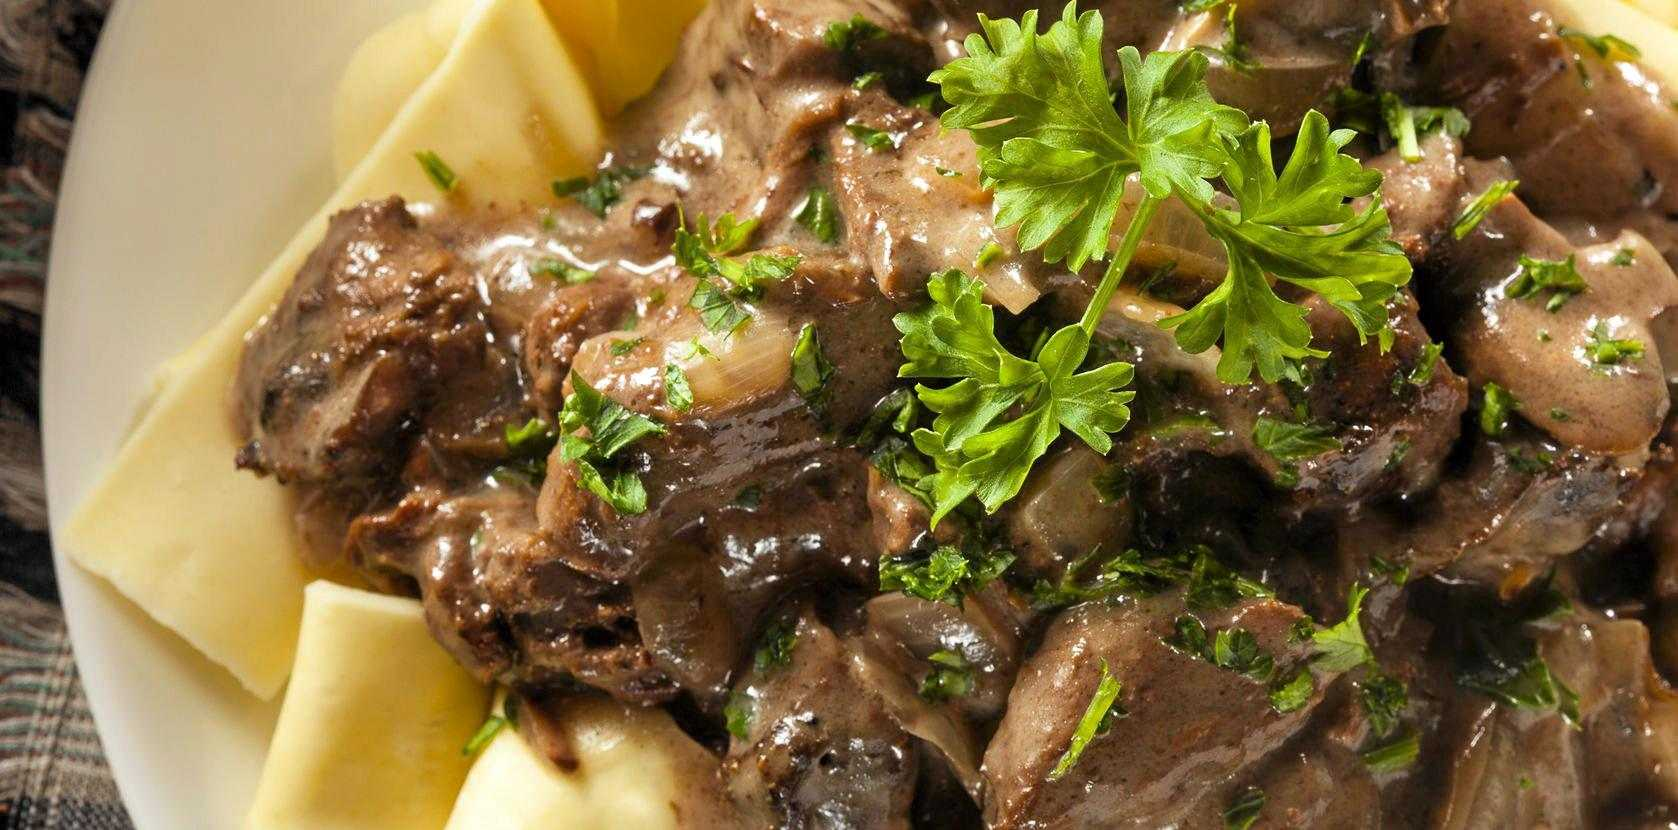 Beef Stroganoff is a traditional Russian dish.